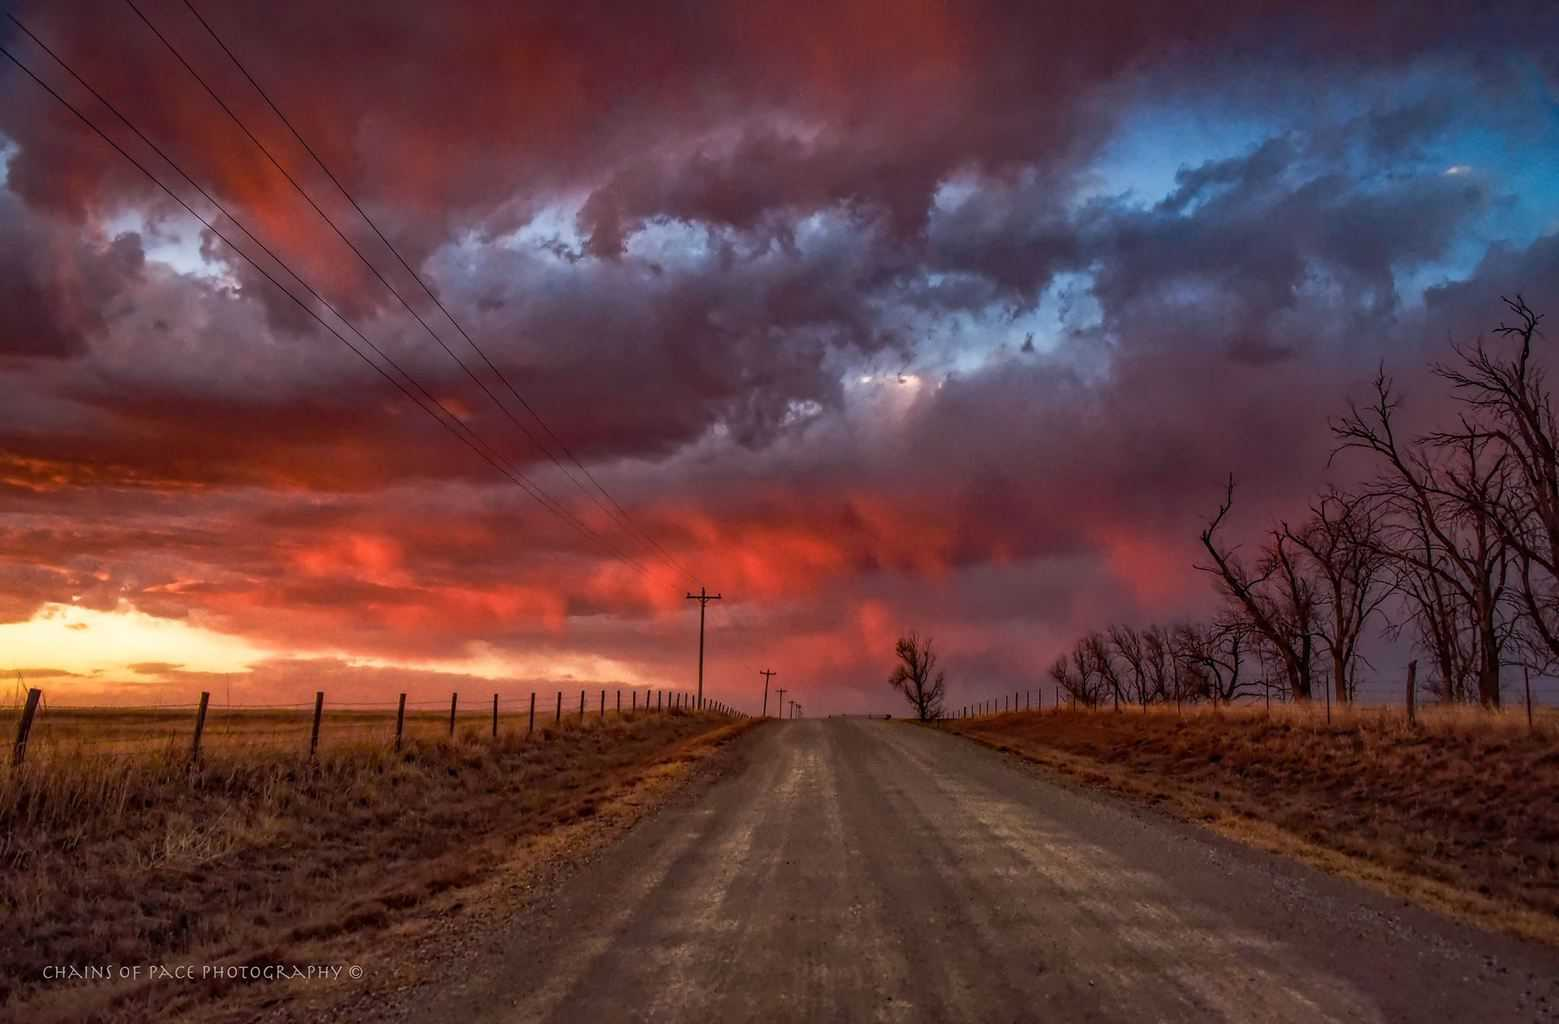 Colors of the sunset in Oklahoma March 23, 2018